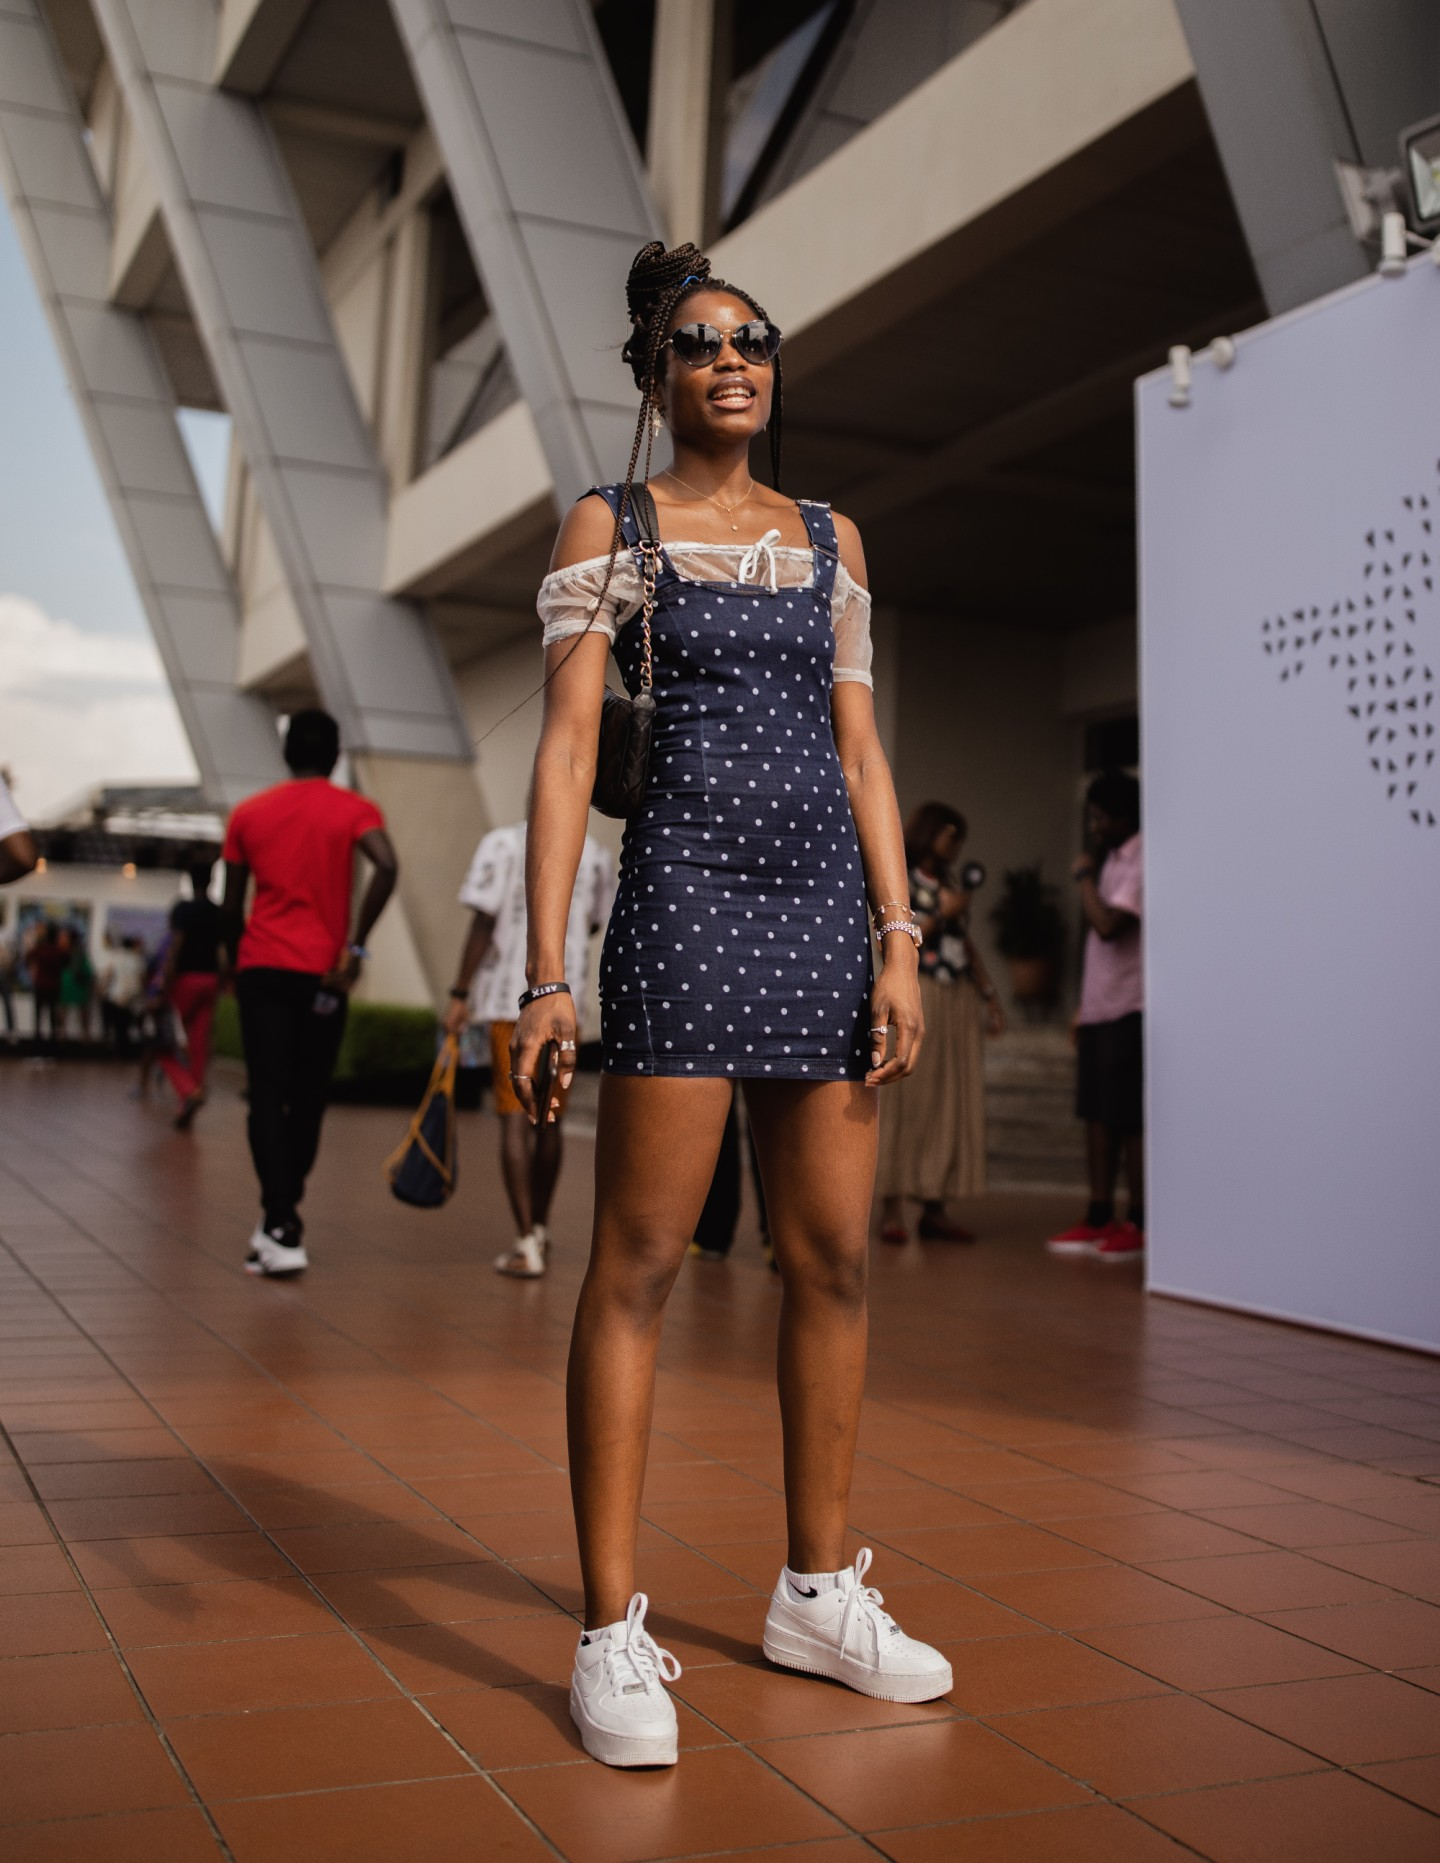 At ART X Lagos, dusk gave simple solids and bold patterns a whole new life